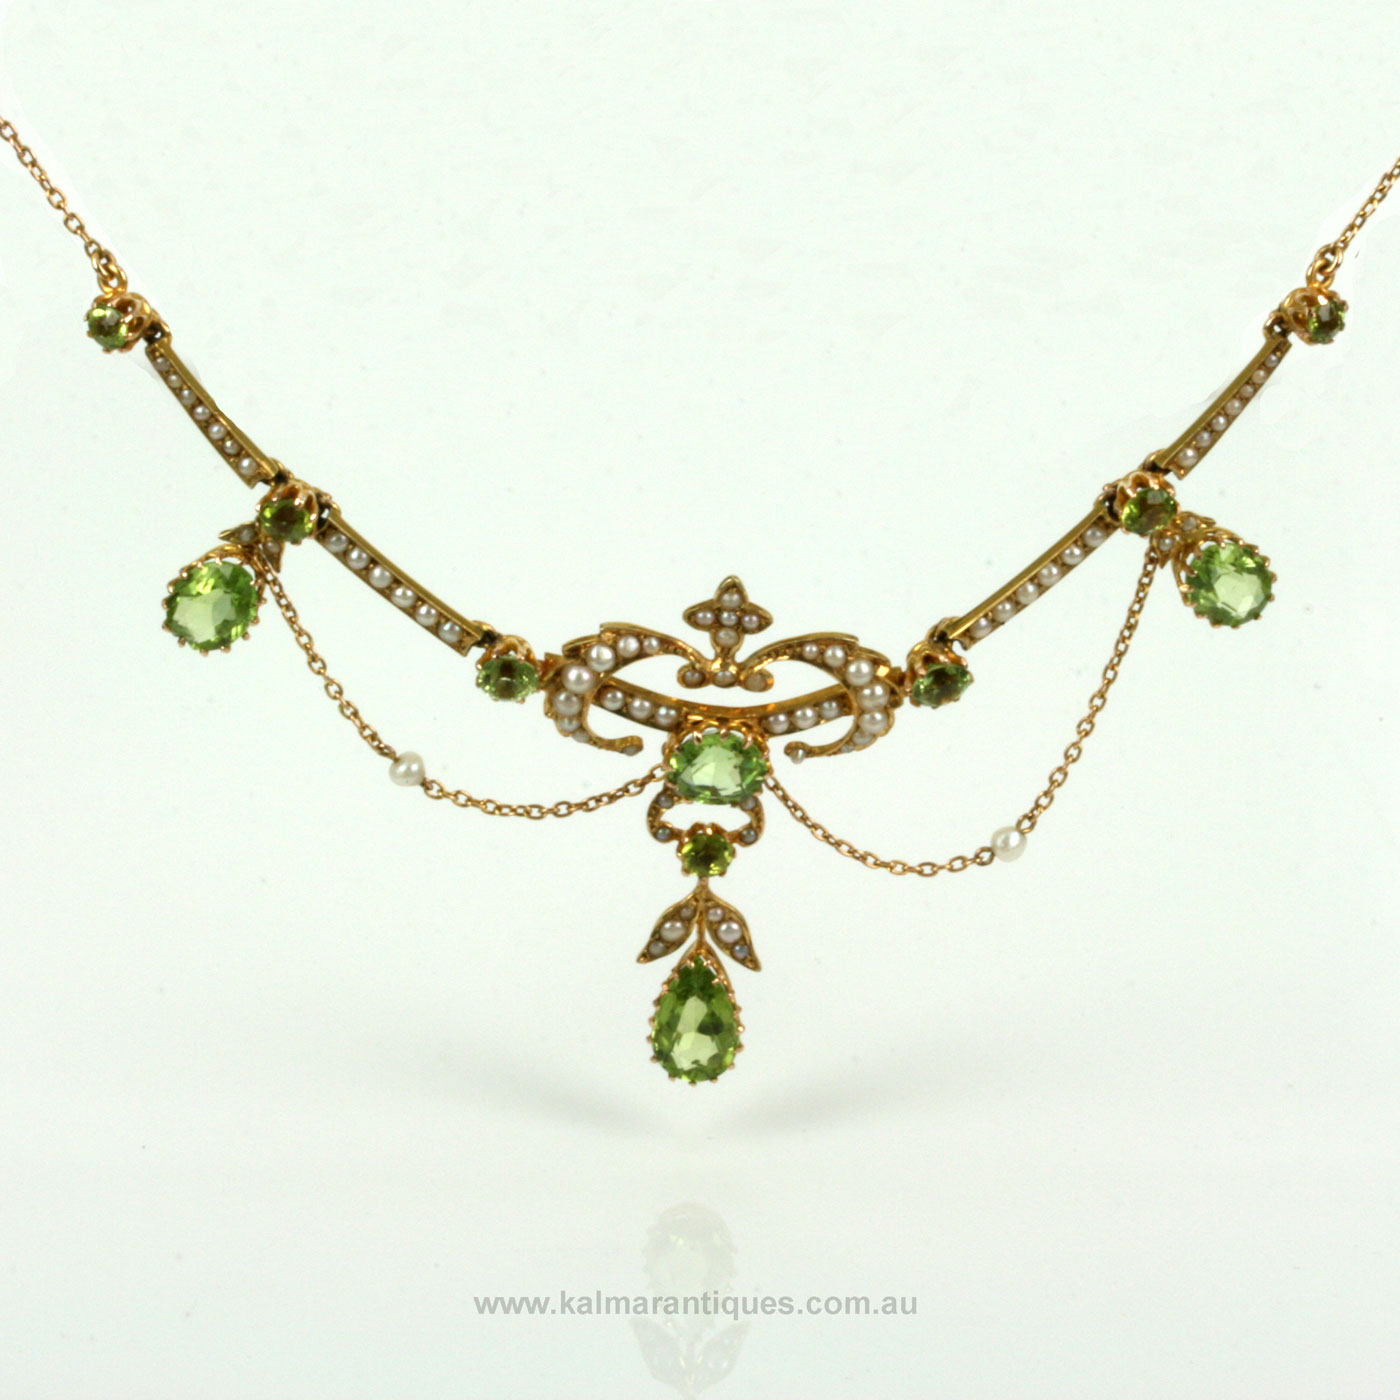 Edwardian Antique Peridot And Pearl Necklace